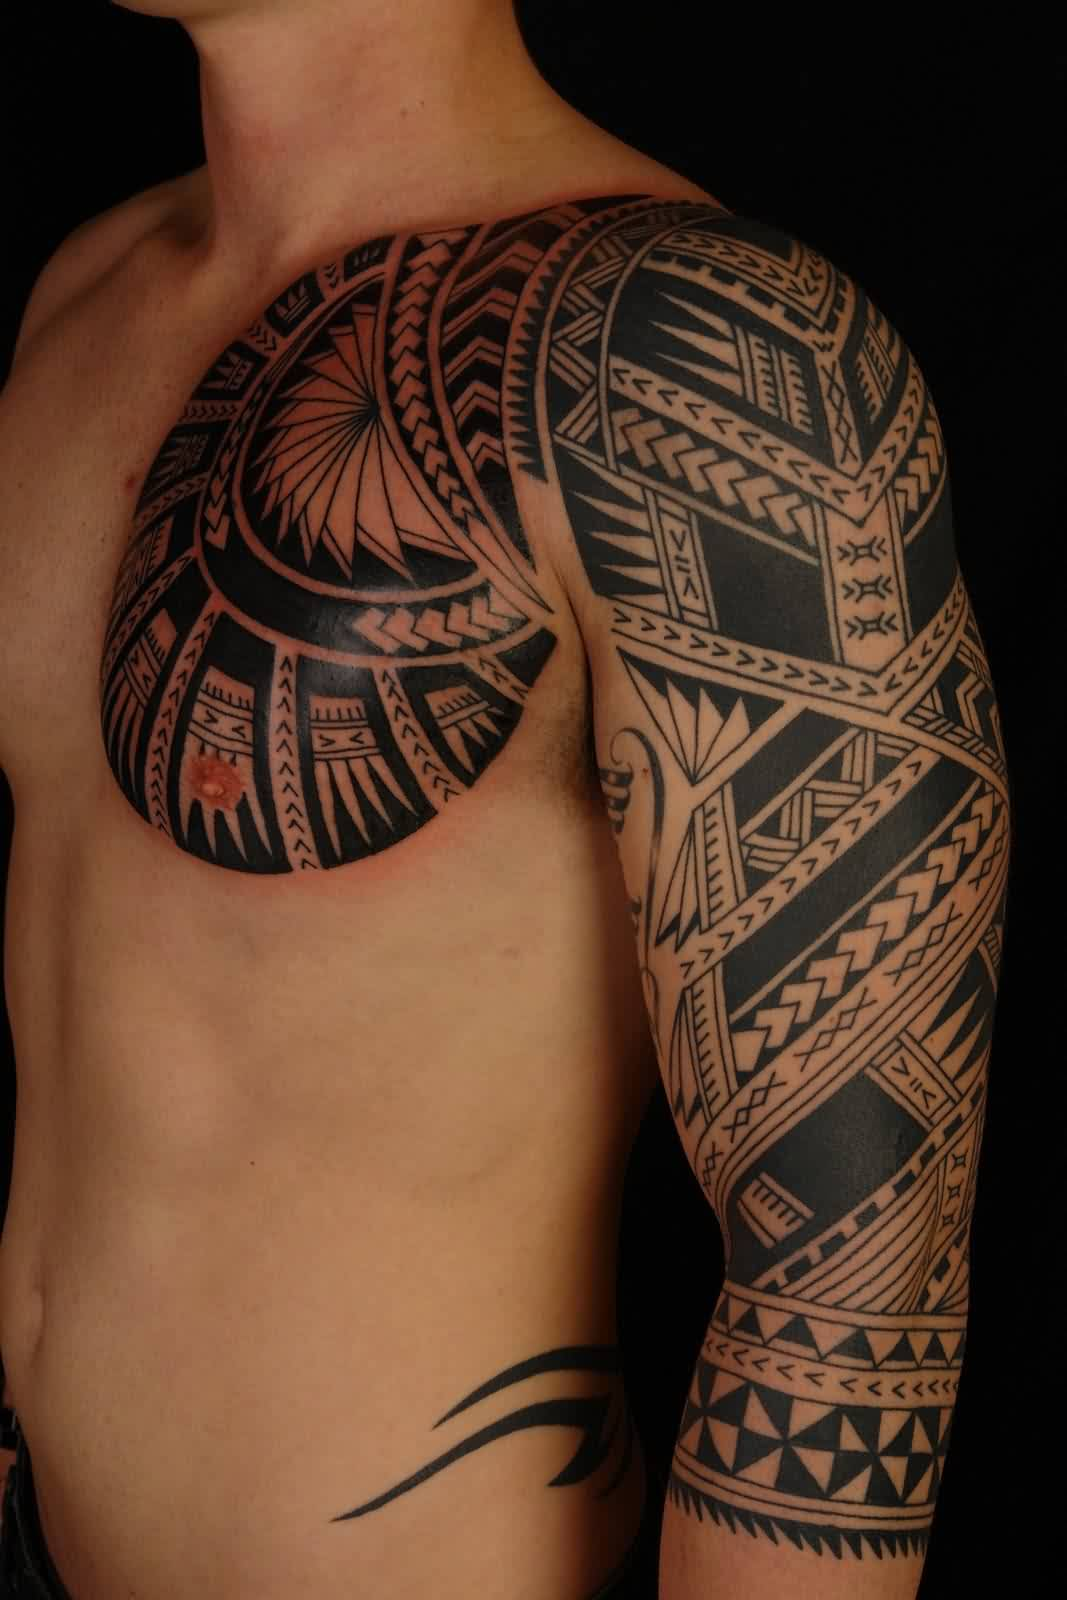 Maori Polynesian Tattoos On Chest And Left Sleeve